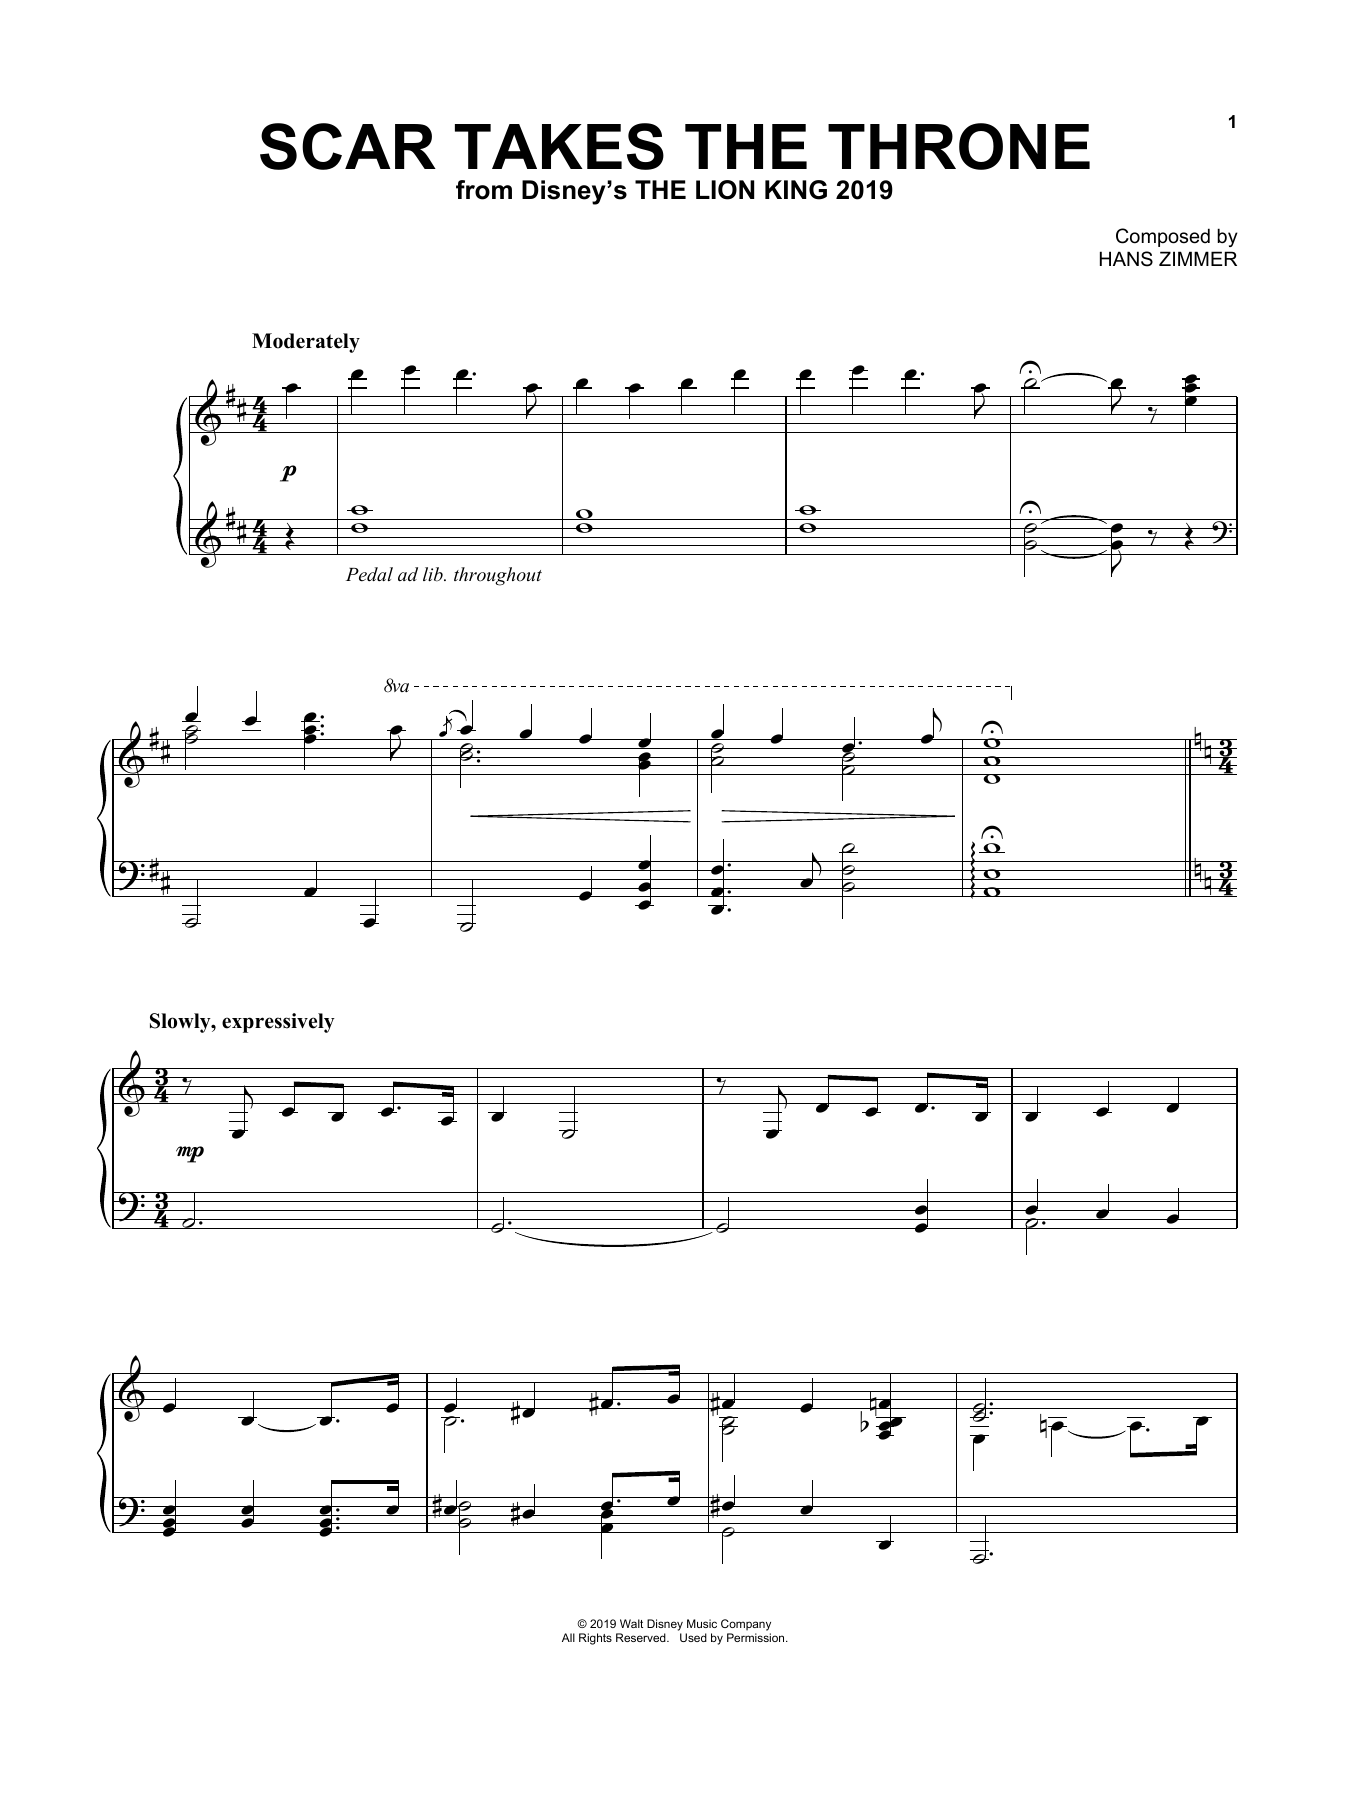 Hans Zimmer Scar Takes The Throne (from The Lion King 2019) sheet music notes and chords. Download Printable PDF.